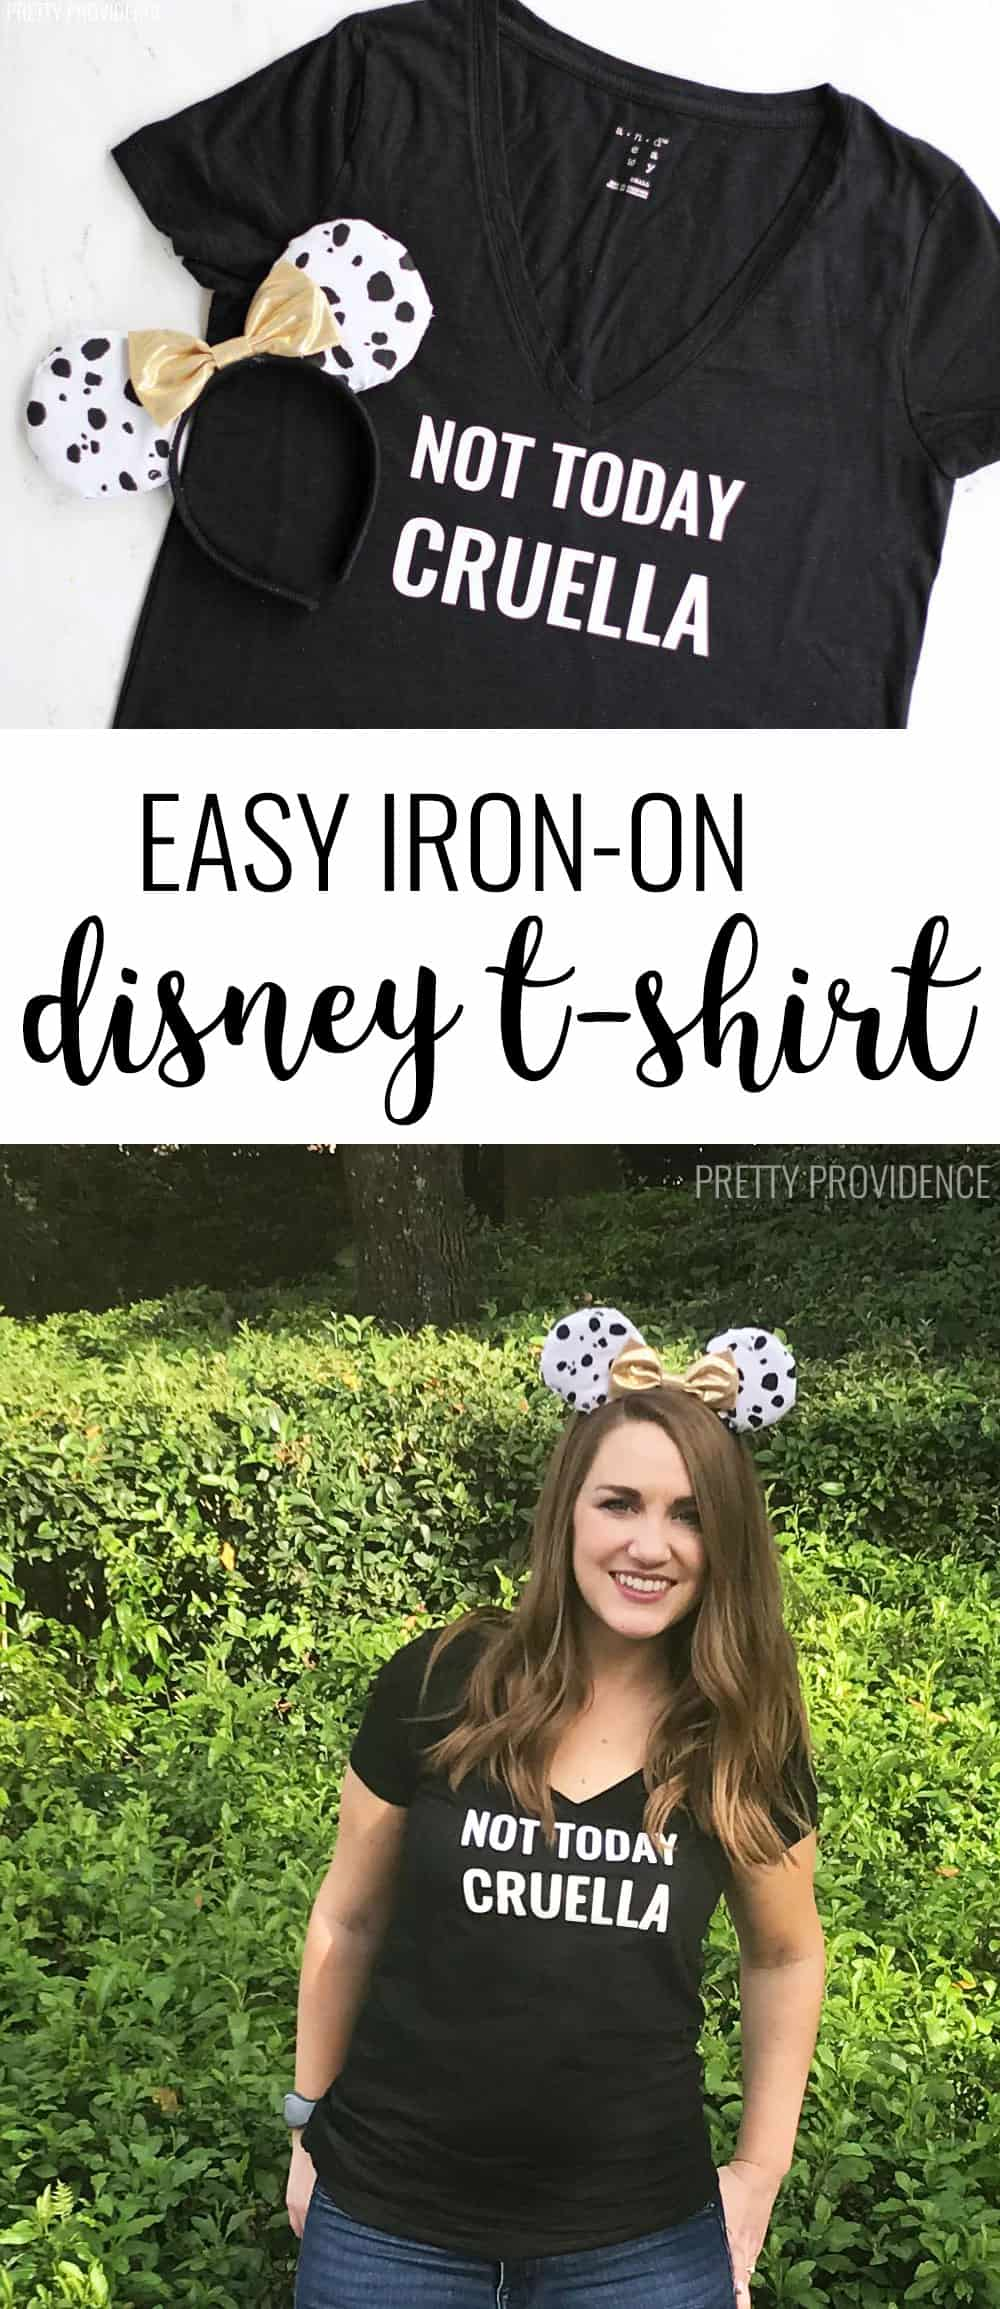 Thsi DIY shirt is perfect for Disneyland or Disney World! Easy to make with iron-on and free cut file!